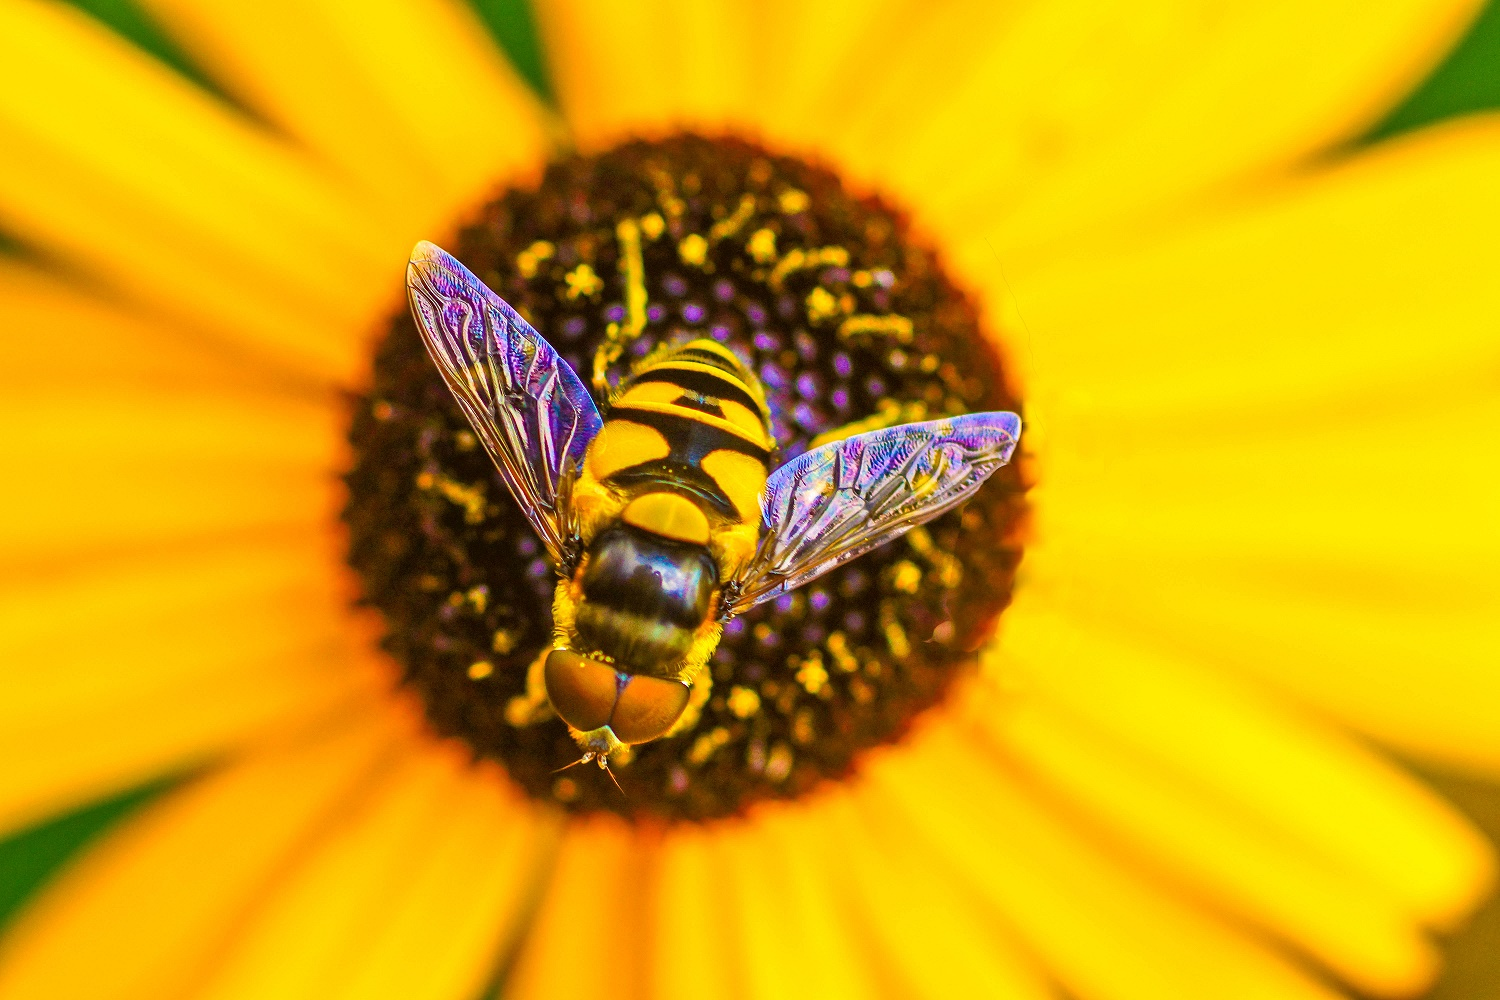 Protecting our Pollinators to be Discussed at Farm Show